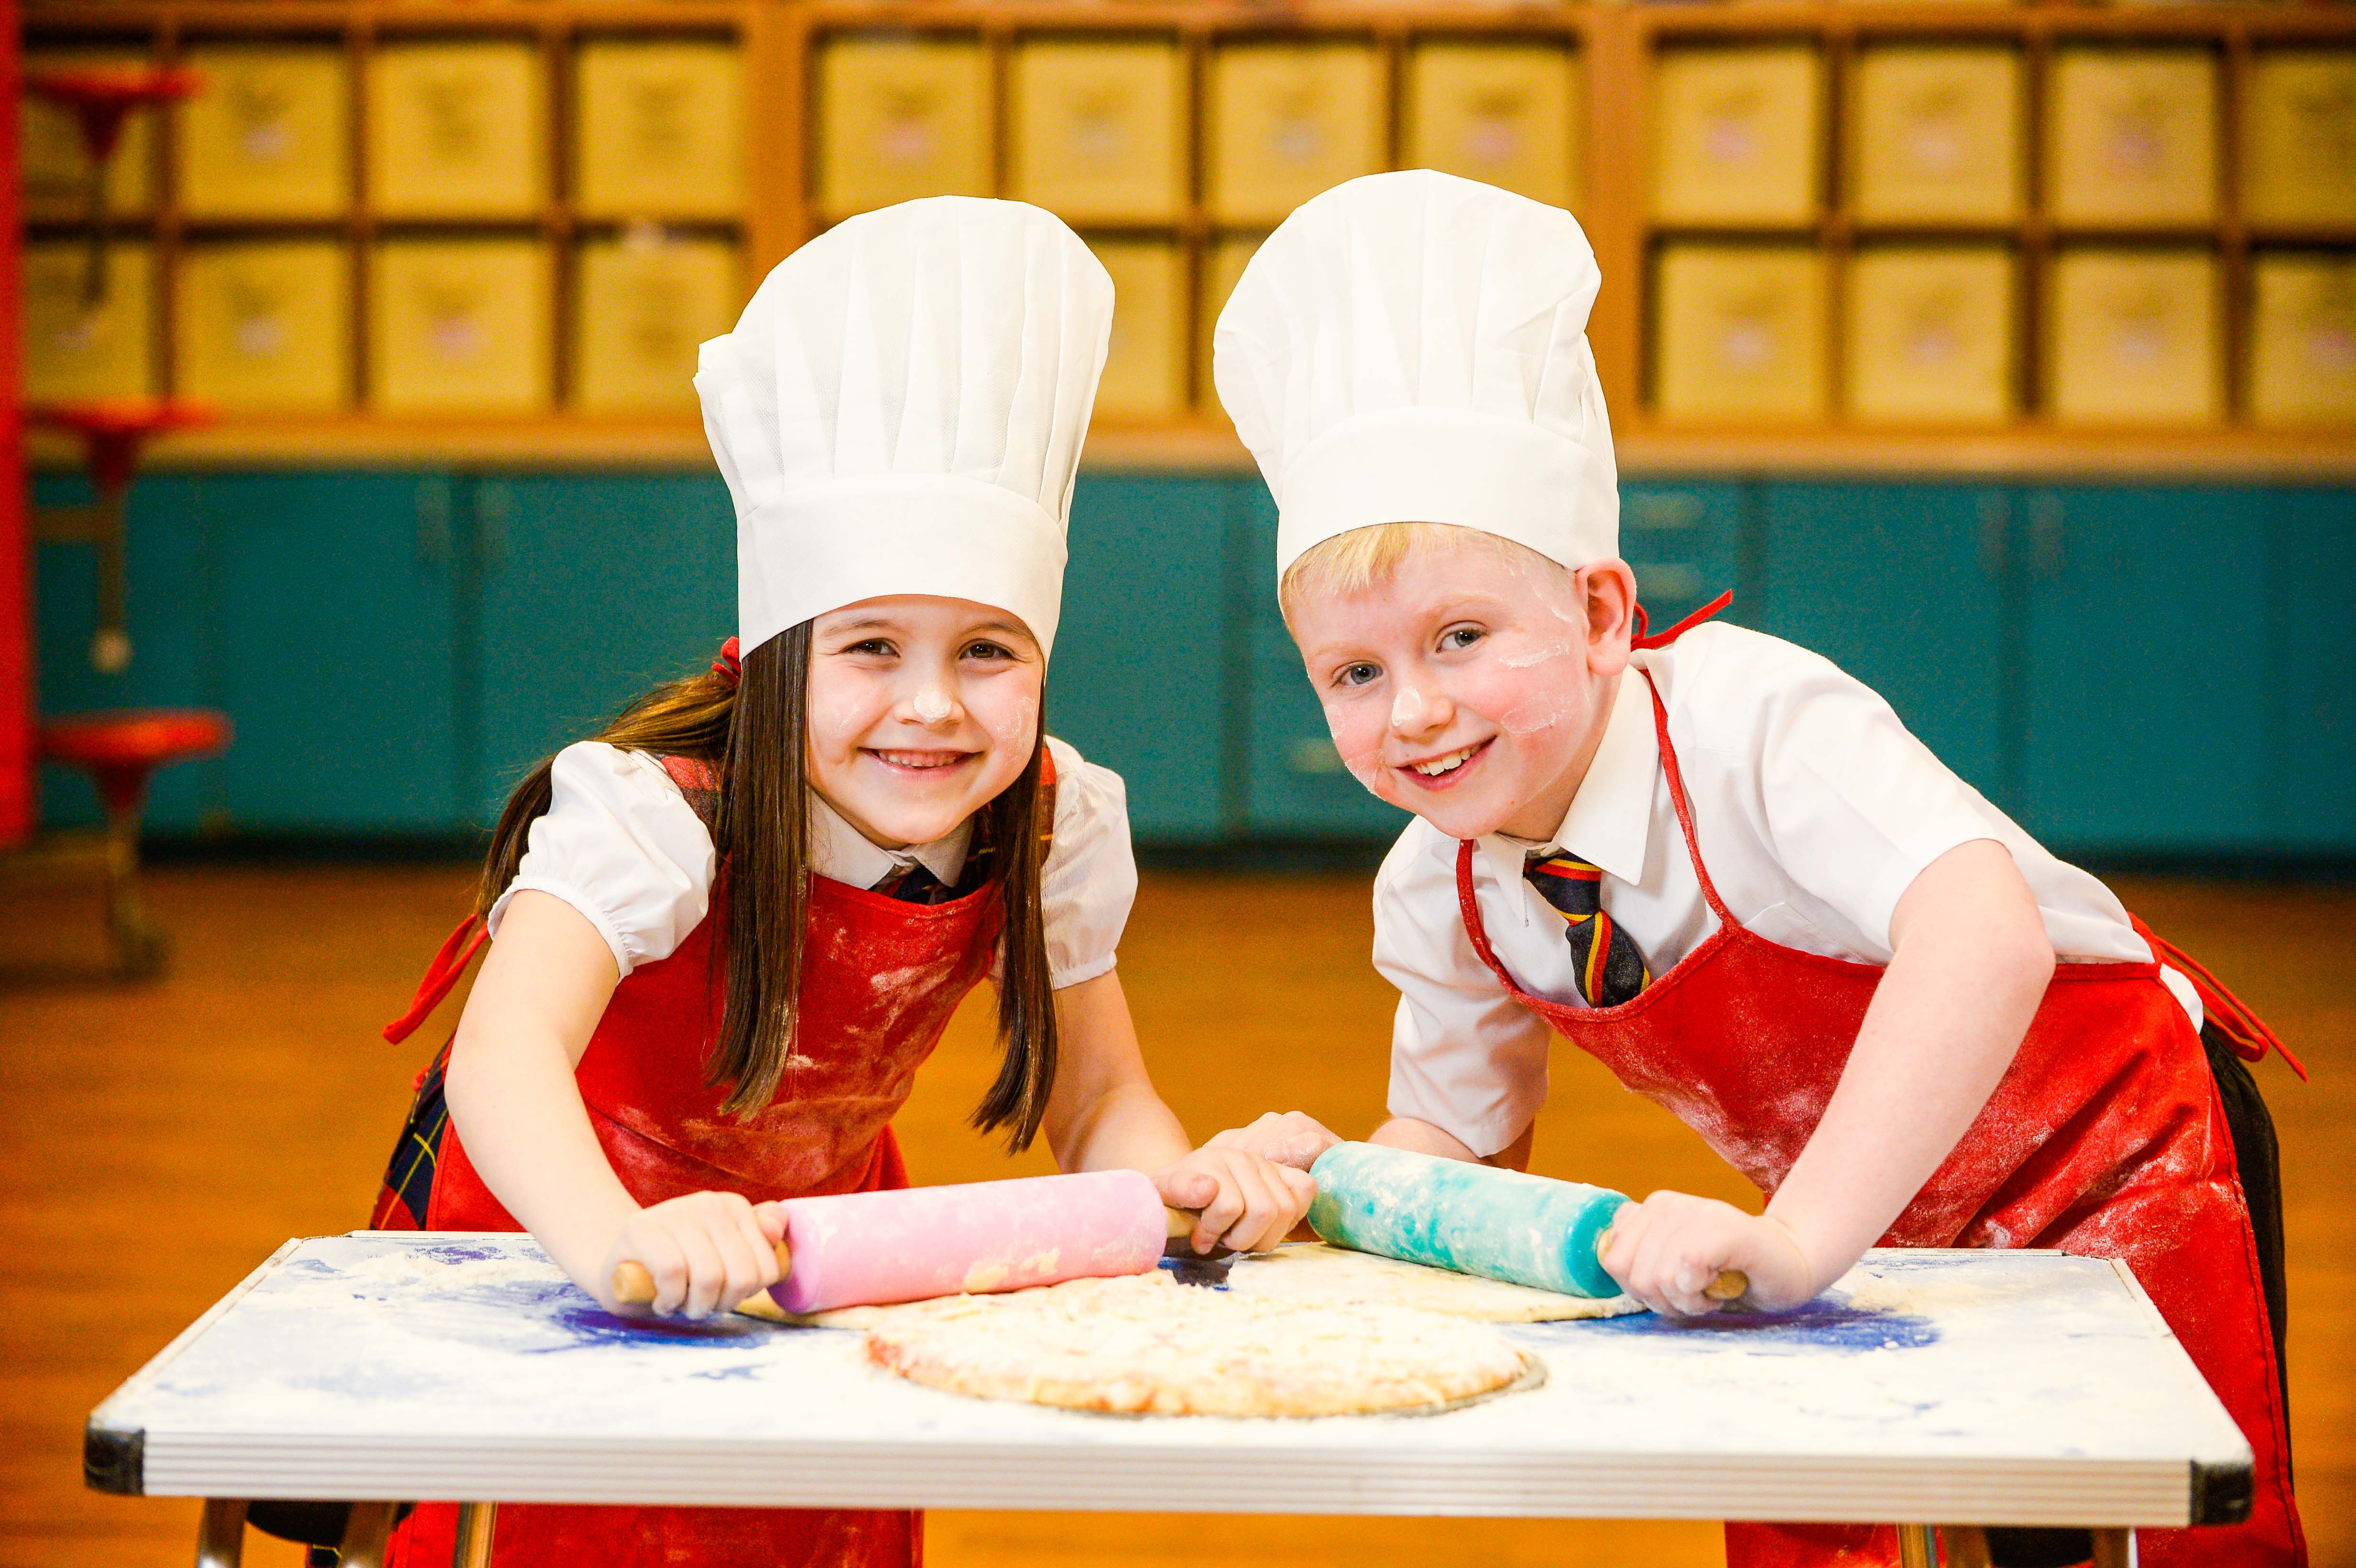 Children from Paisley are looking forward to the Paisley Food and Drink Festival (Nick Ponty/Paisley Food and Drink Festival/PA)